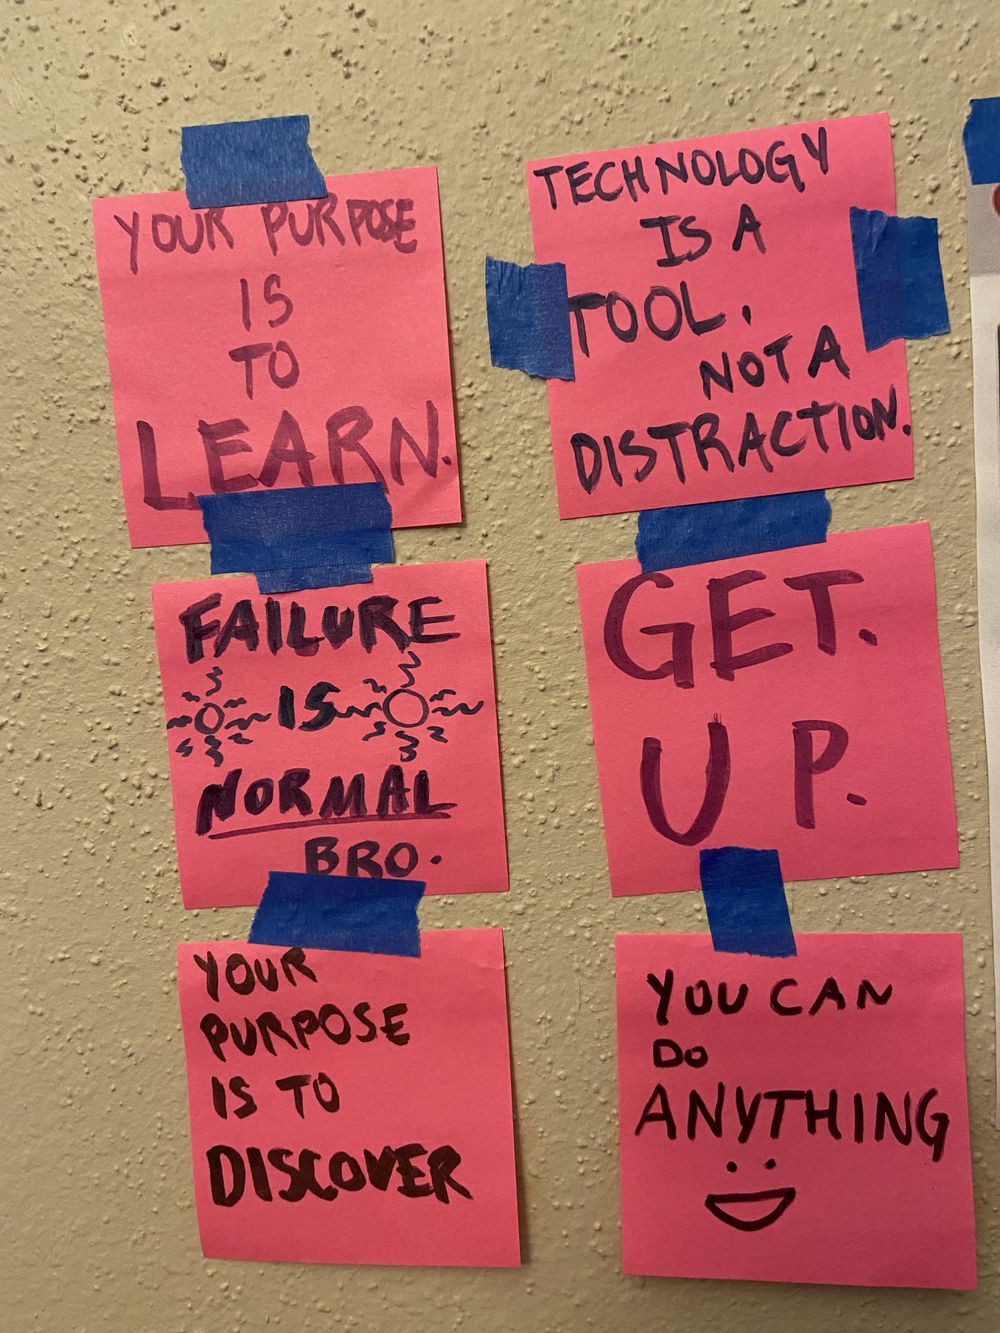 Affirmation stickies - image 2 - student project